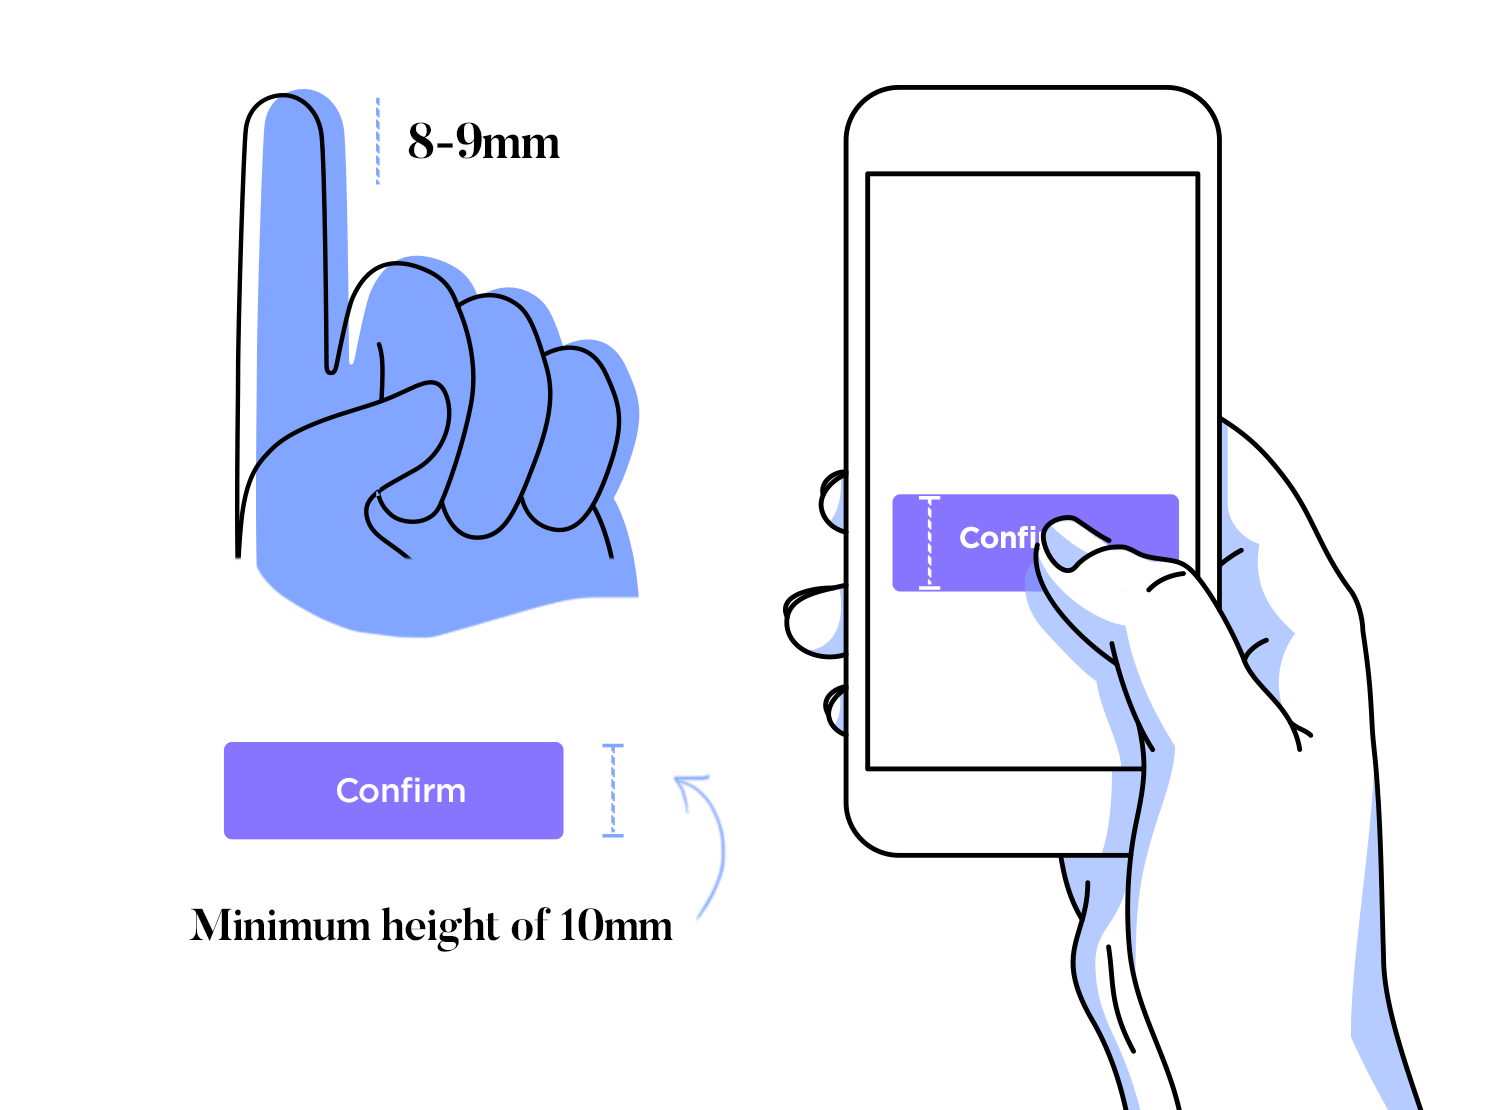 minimum size requirements for buttons in ui design